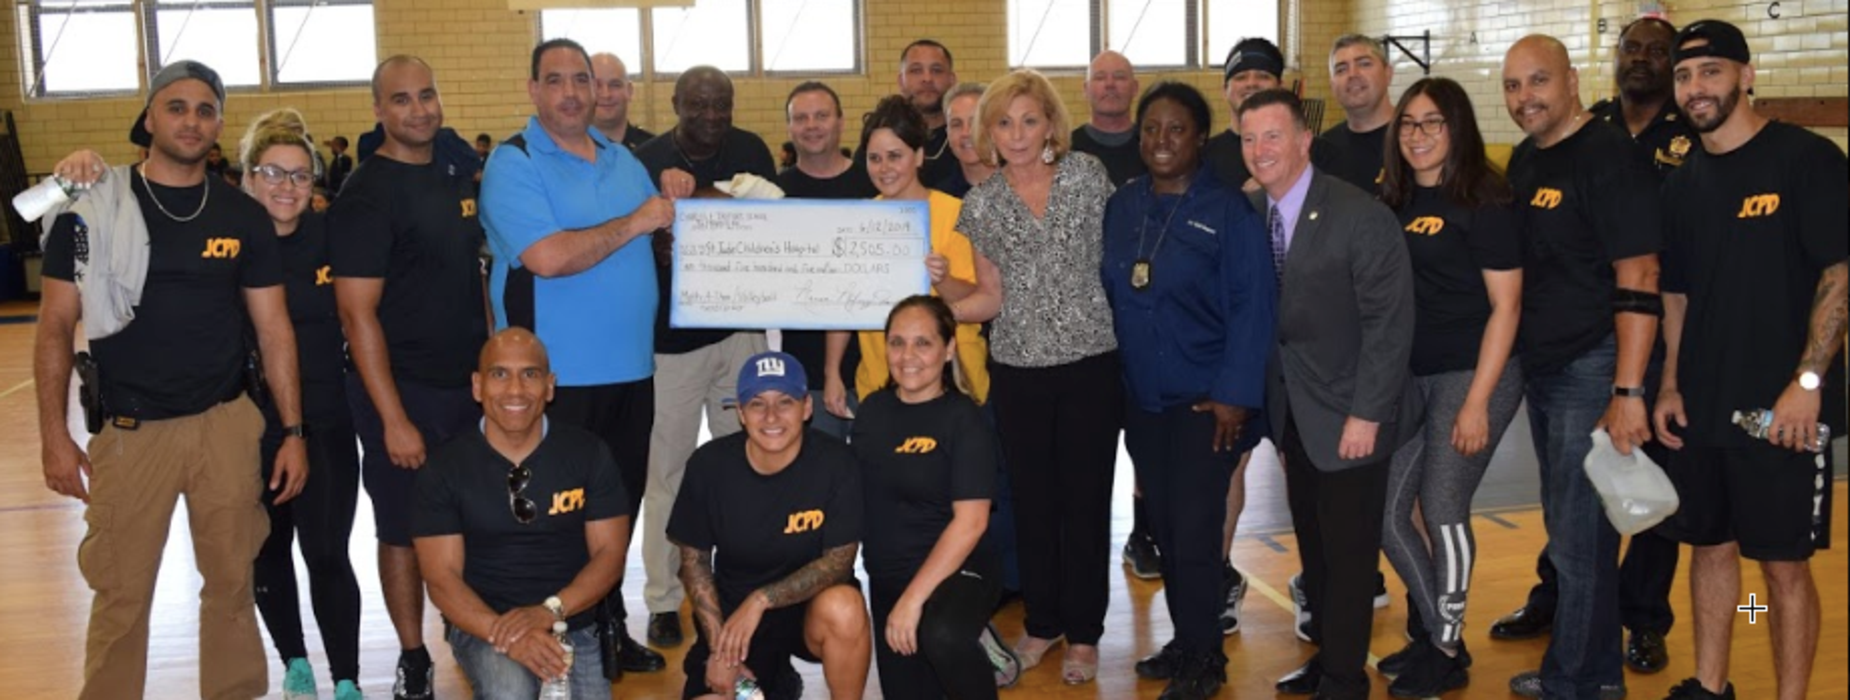 Students and teachers stand with the Jersey City Fire Department after a charity volleyball game